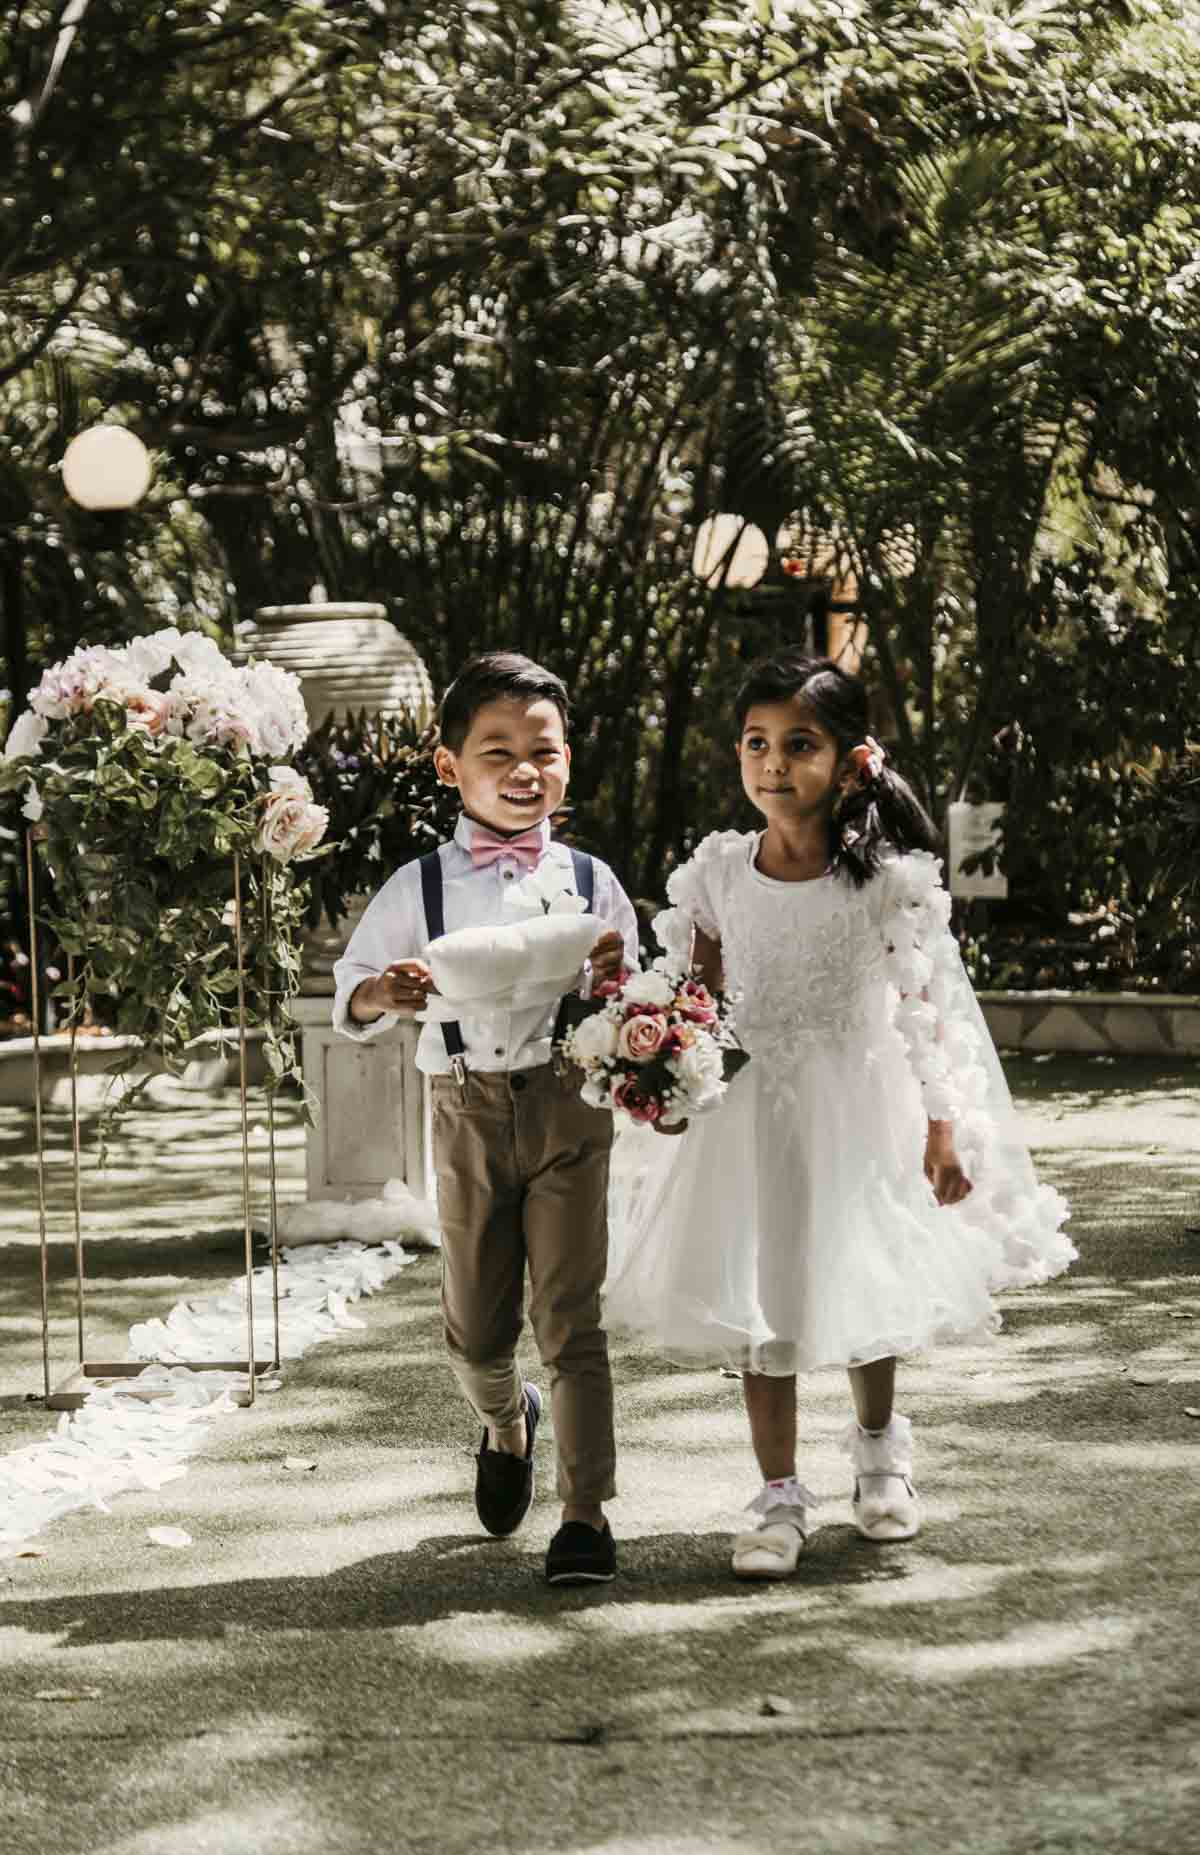 Shay and Uppi's modern and romantic garden civil wedding ceremony took place at Boulevard Gardens in Brisbane, Australia. They had a flower girl and ring boy for their outdoor wedding.